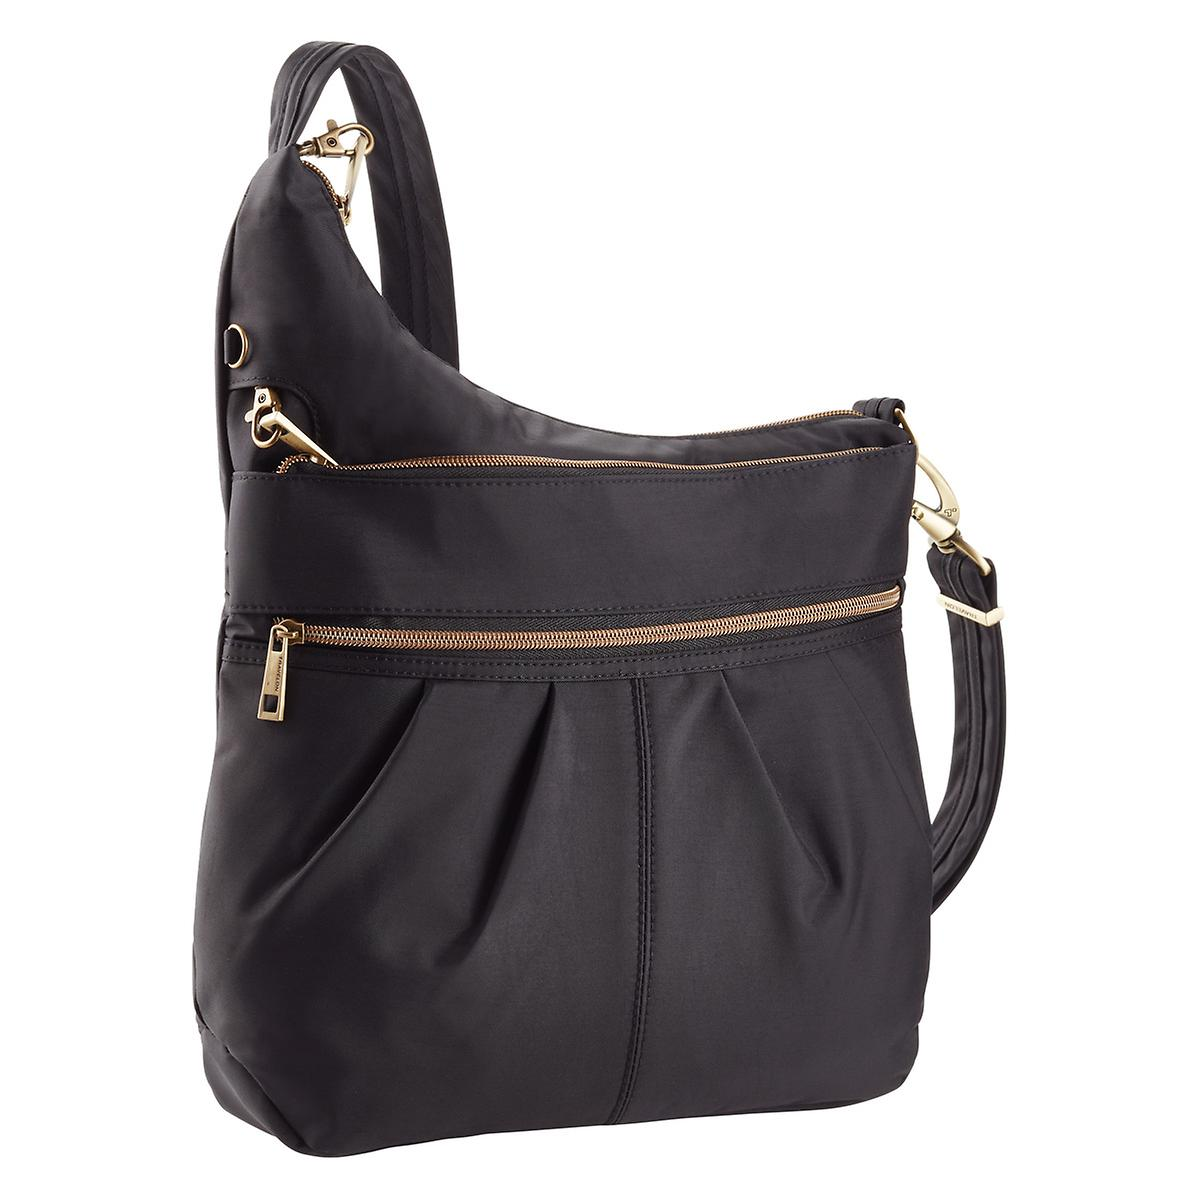 Travelon Black Anti-Theft Signature Crossbody Bag